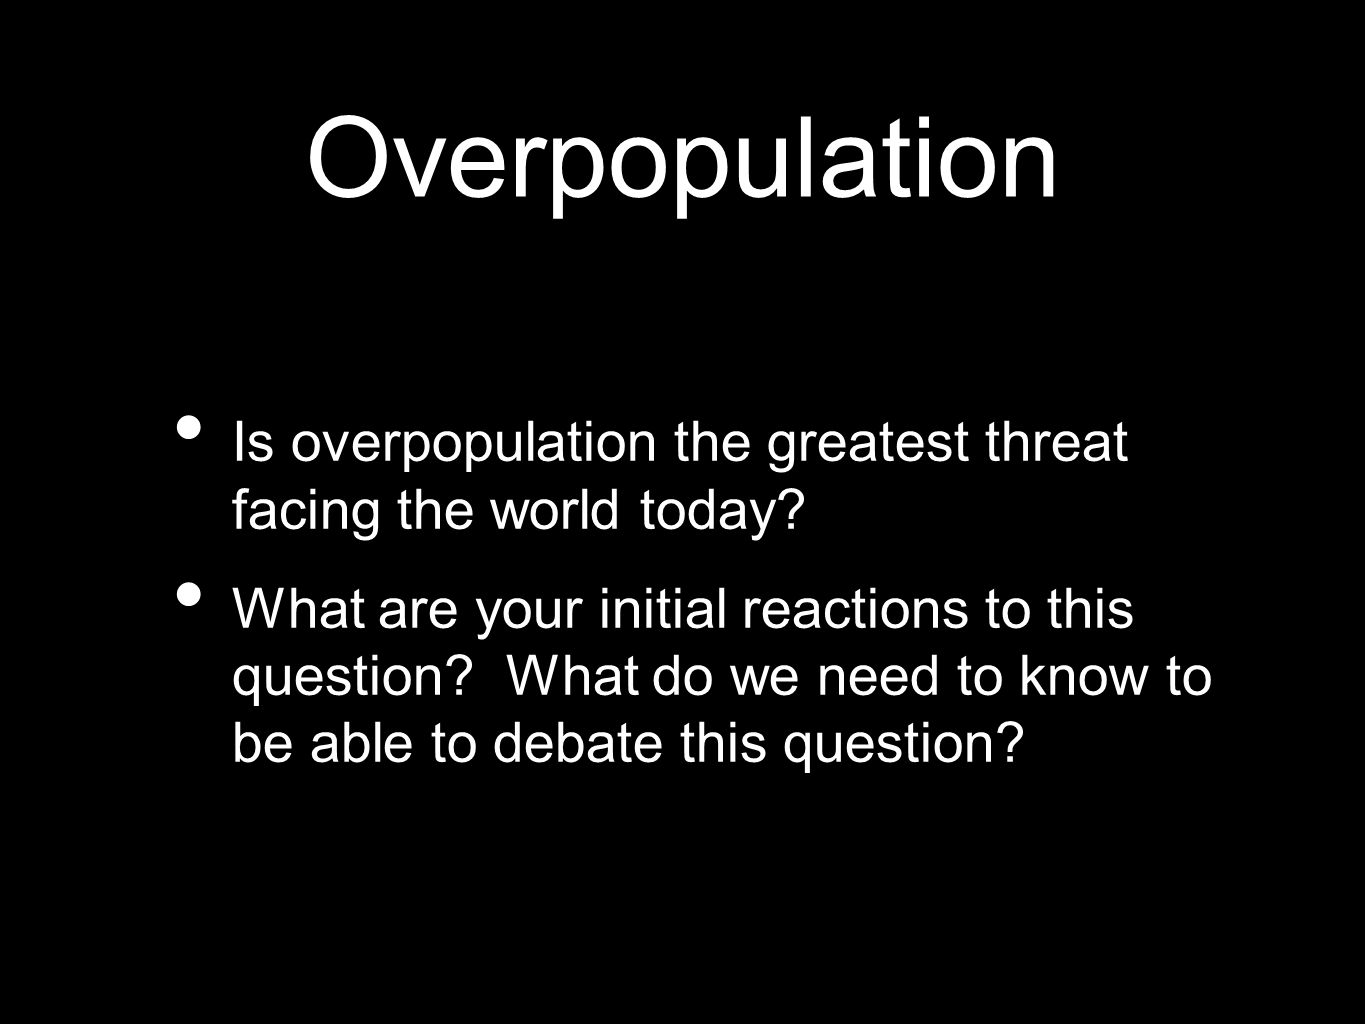 Overpopulation Is overpopulation the greatest threat facing the world today